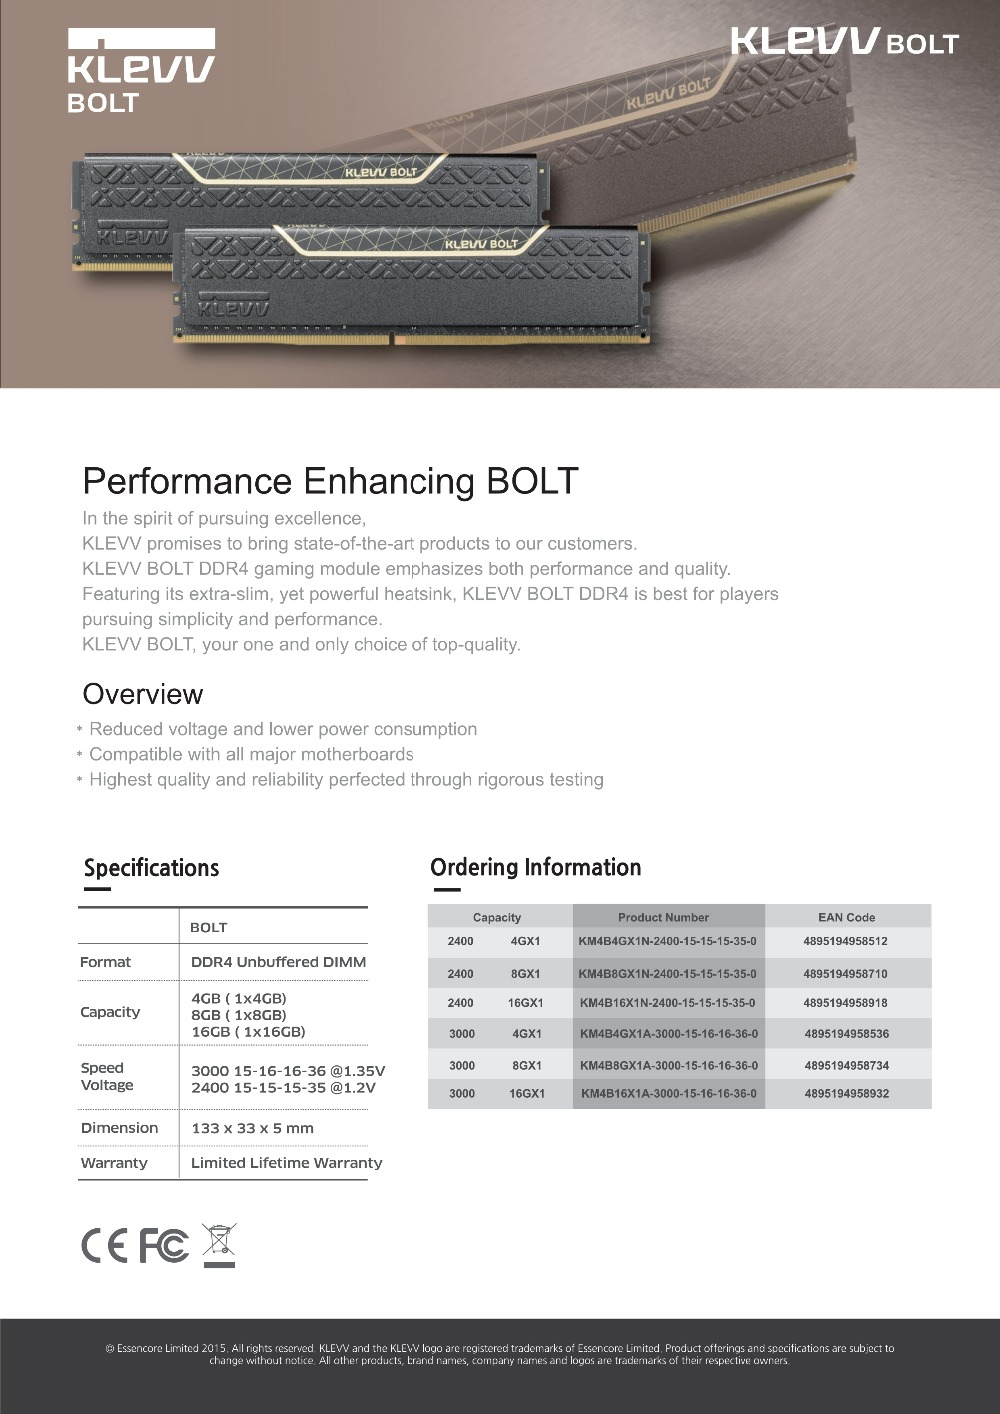 20170912_Product Sheet_EN_OC Bolt_V.1.0_S_1